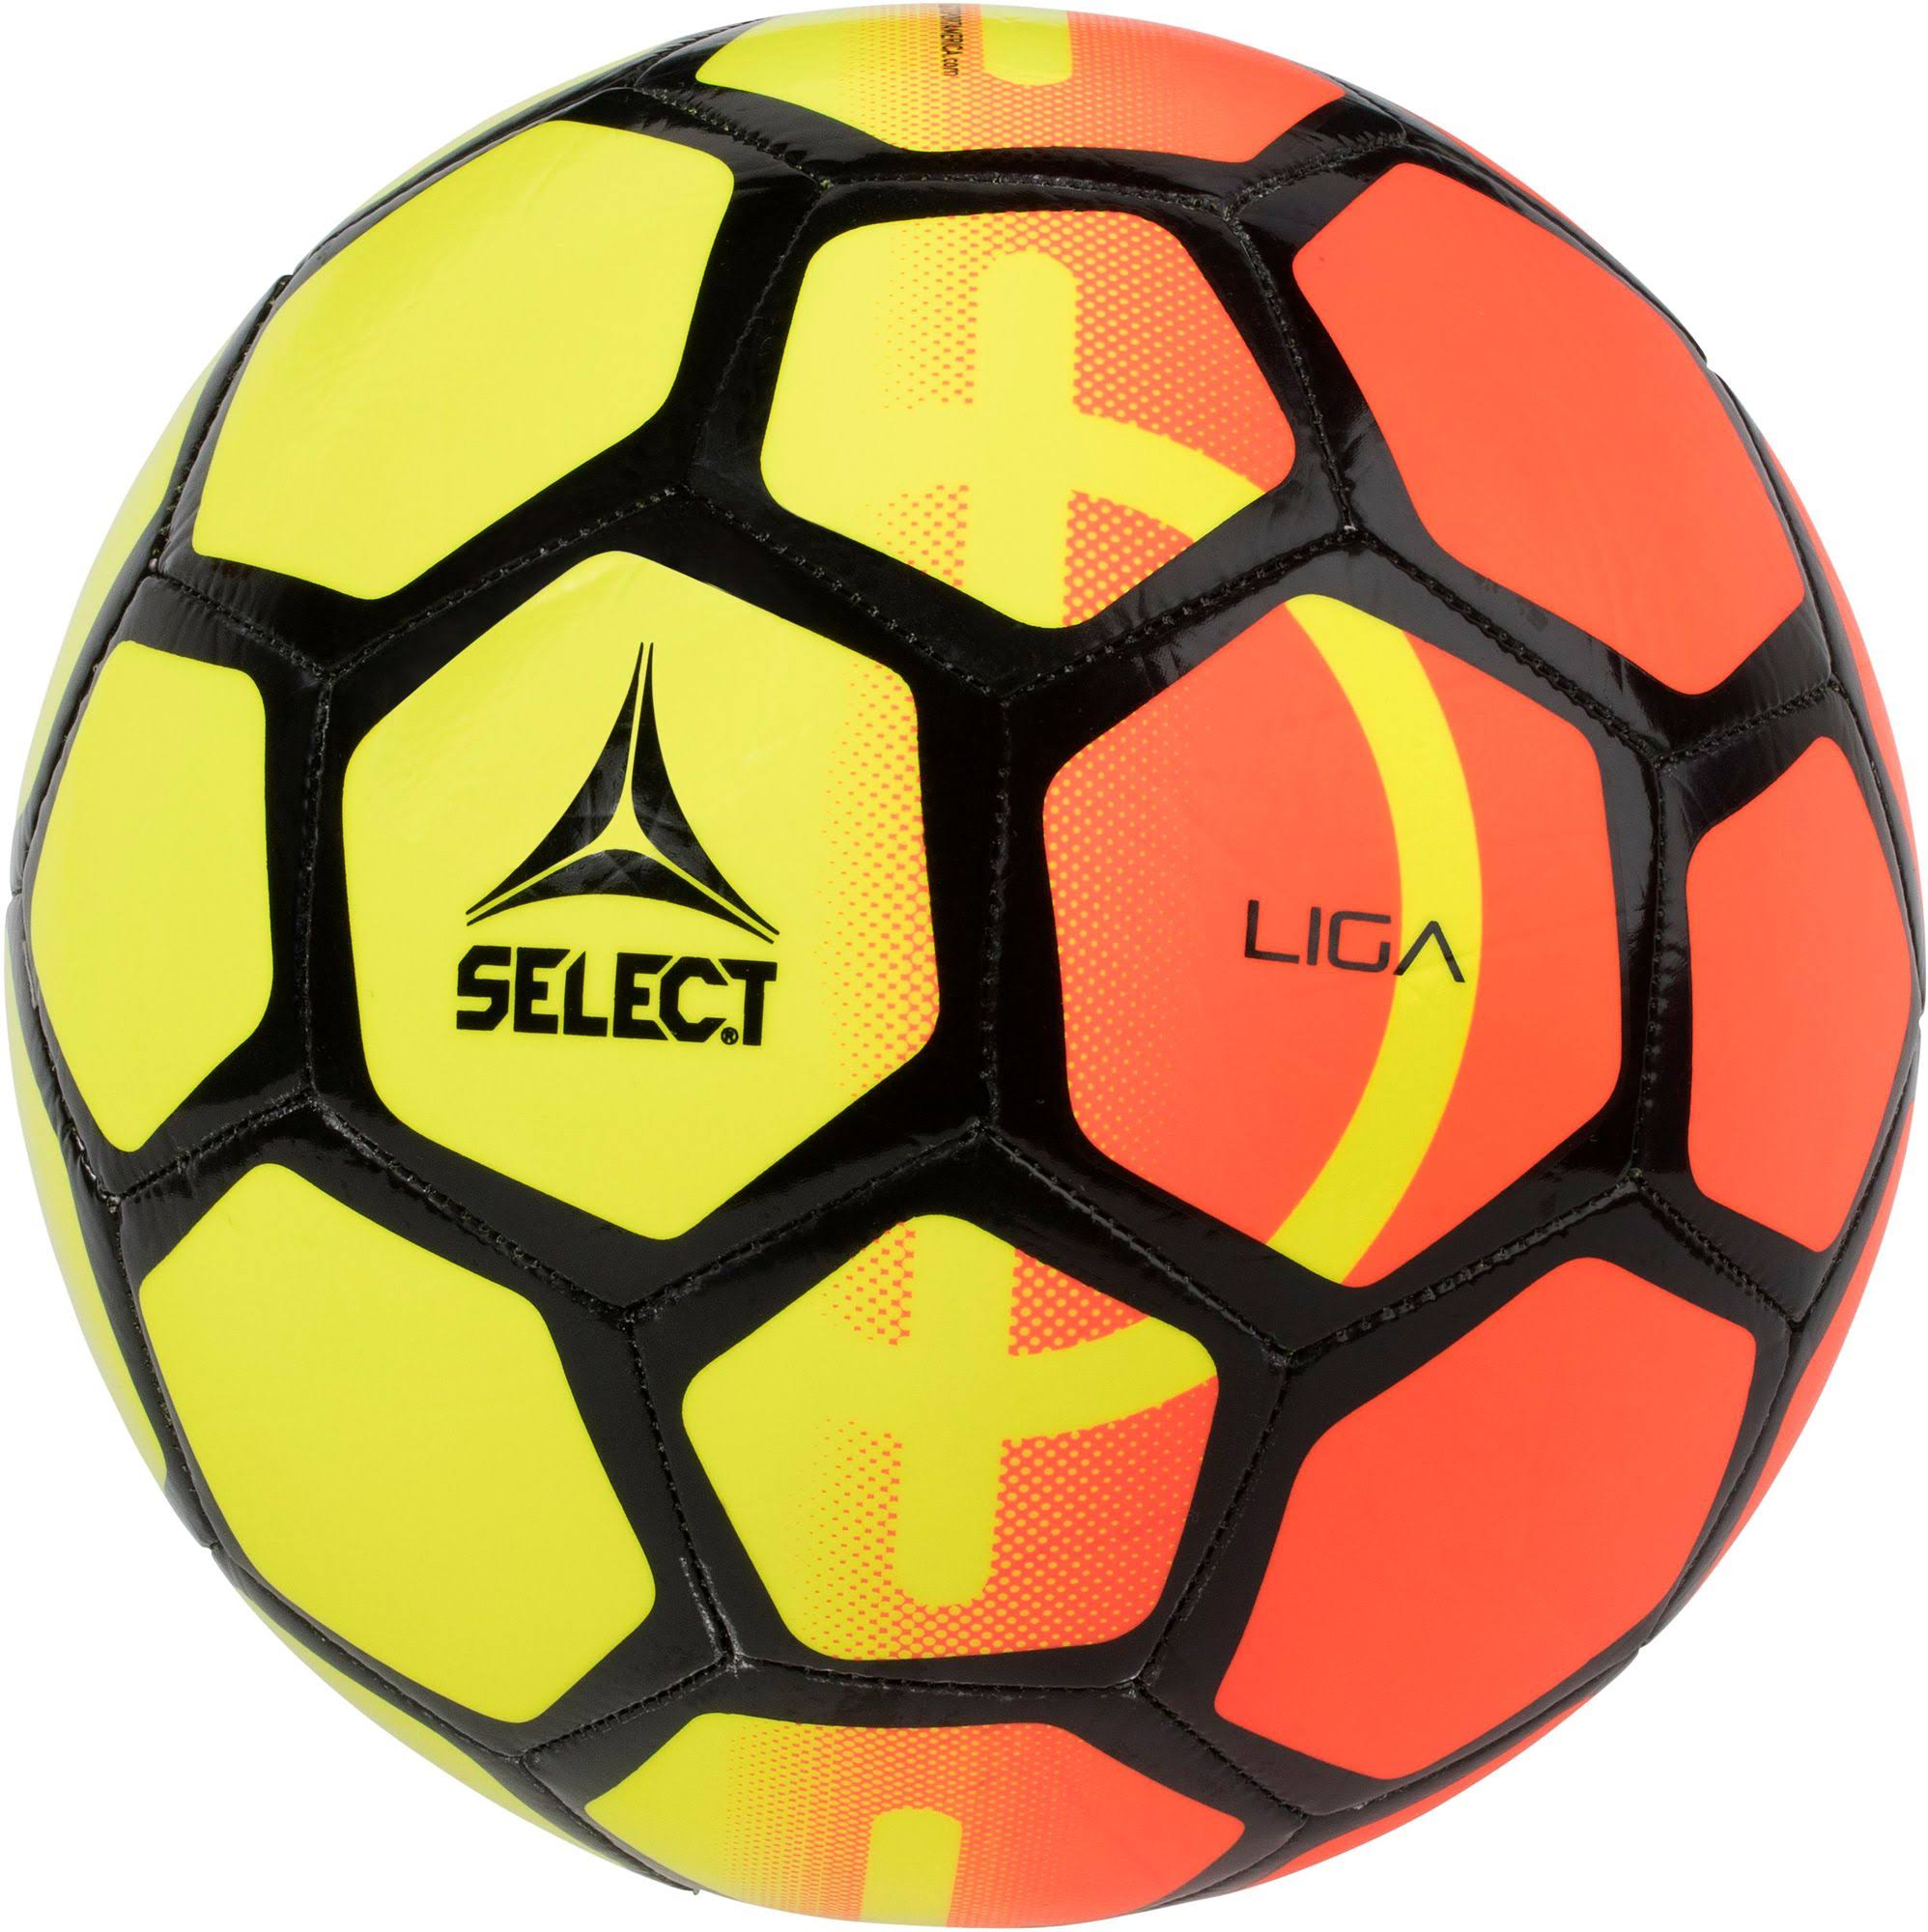 Select Liga Soccer Ball, Size: 5, Orange